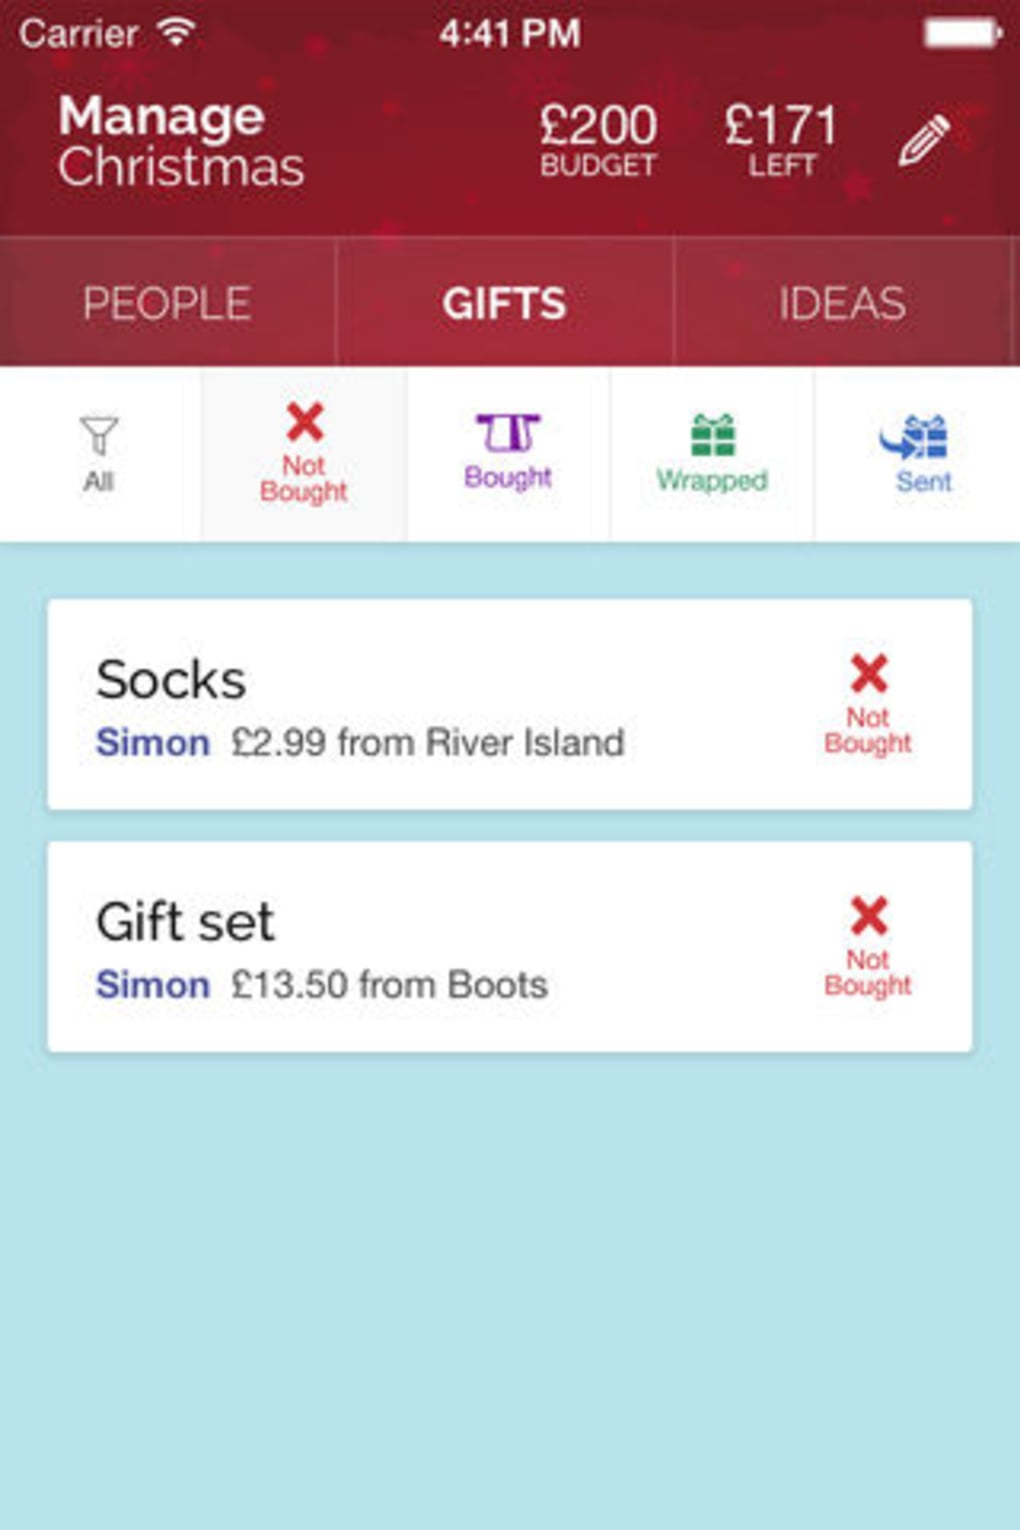 Manage Christmas - Christmas Gift List Manager for iPhone - Download